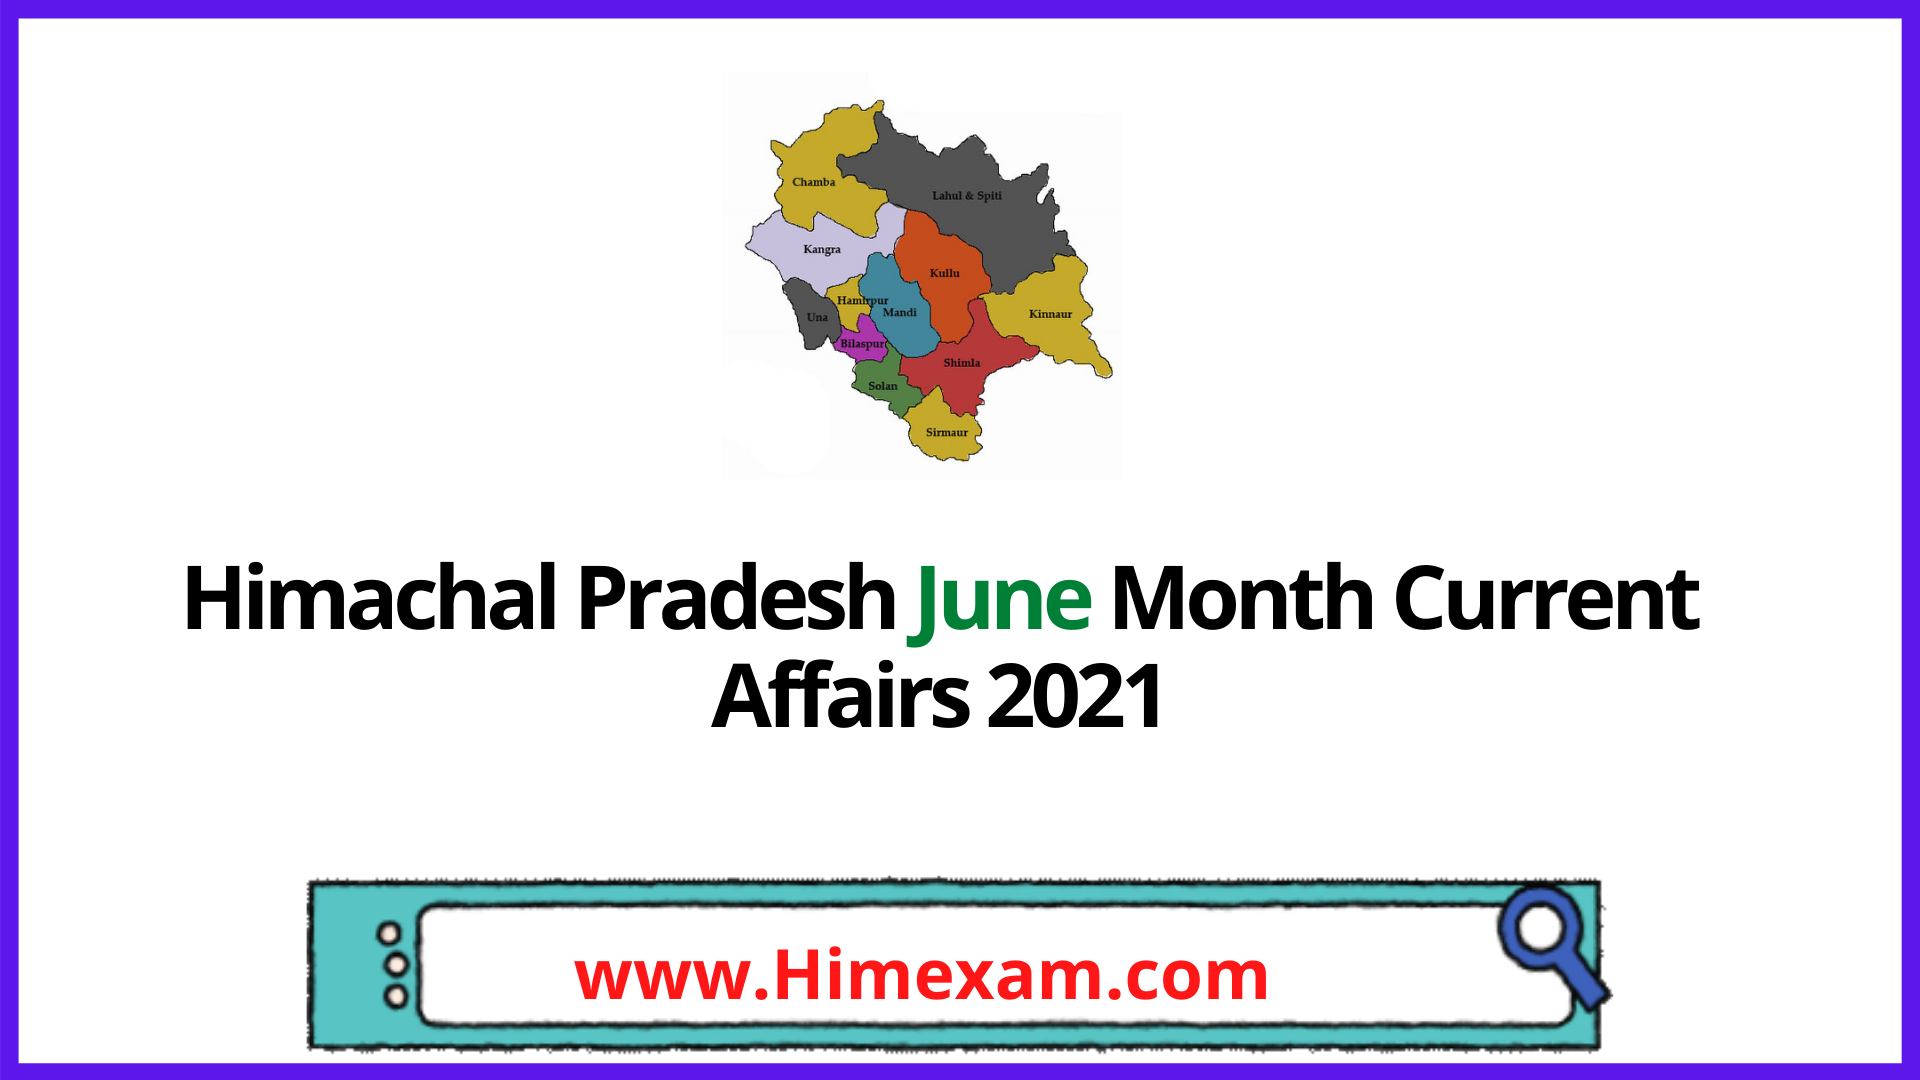 Himachal Pradesh June Month Current Affairs 2021 In English